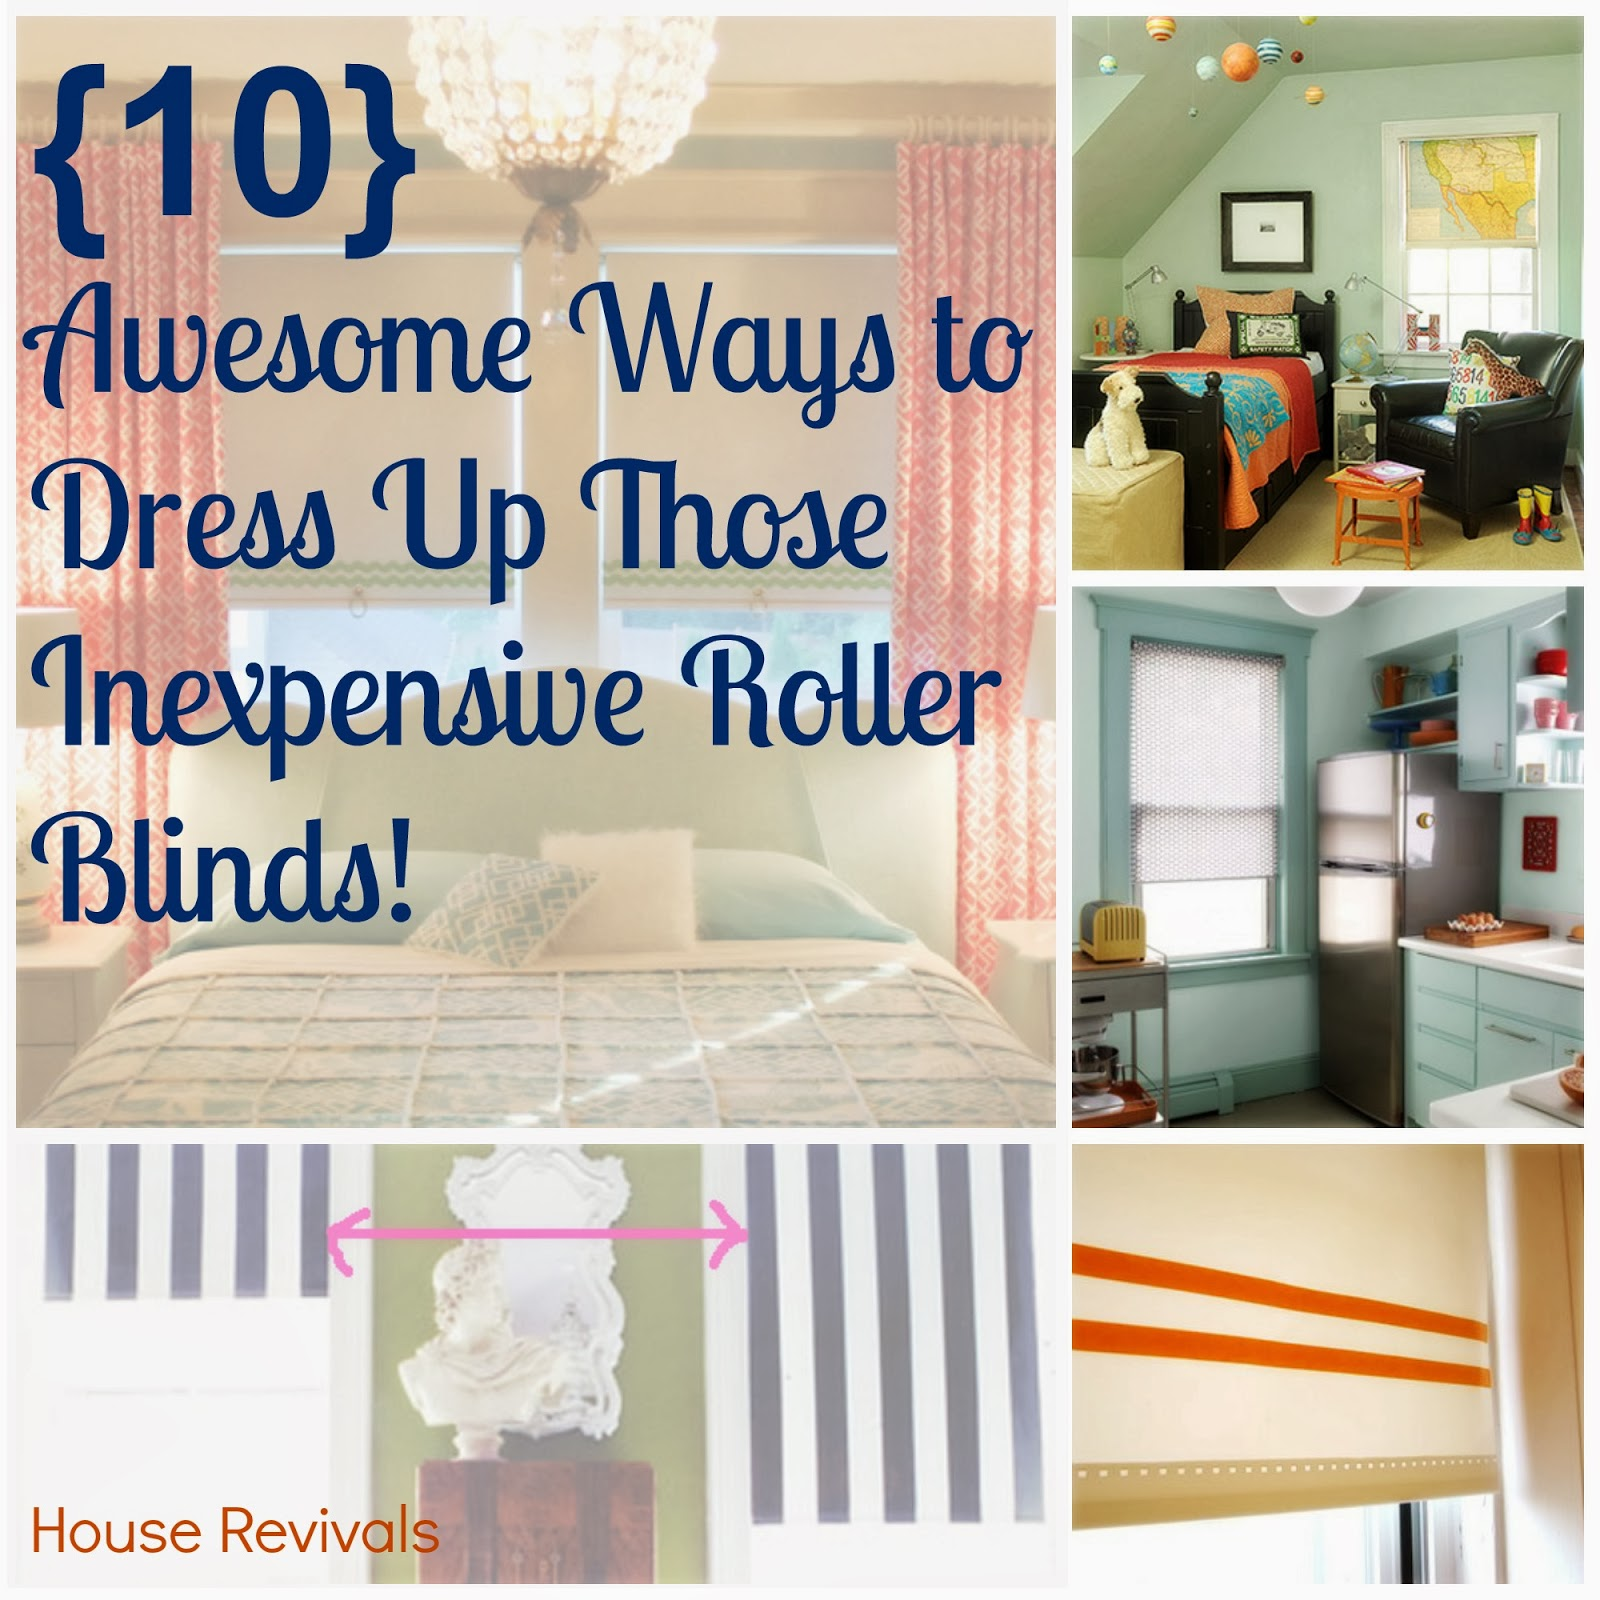 House Revivals: Ideas for Dressing up Inexpensive Roller Shades